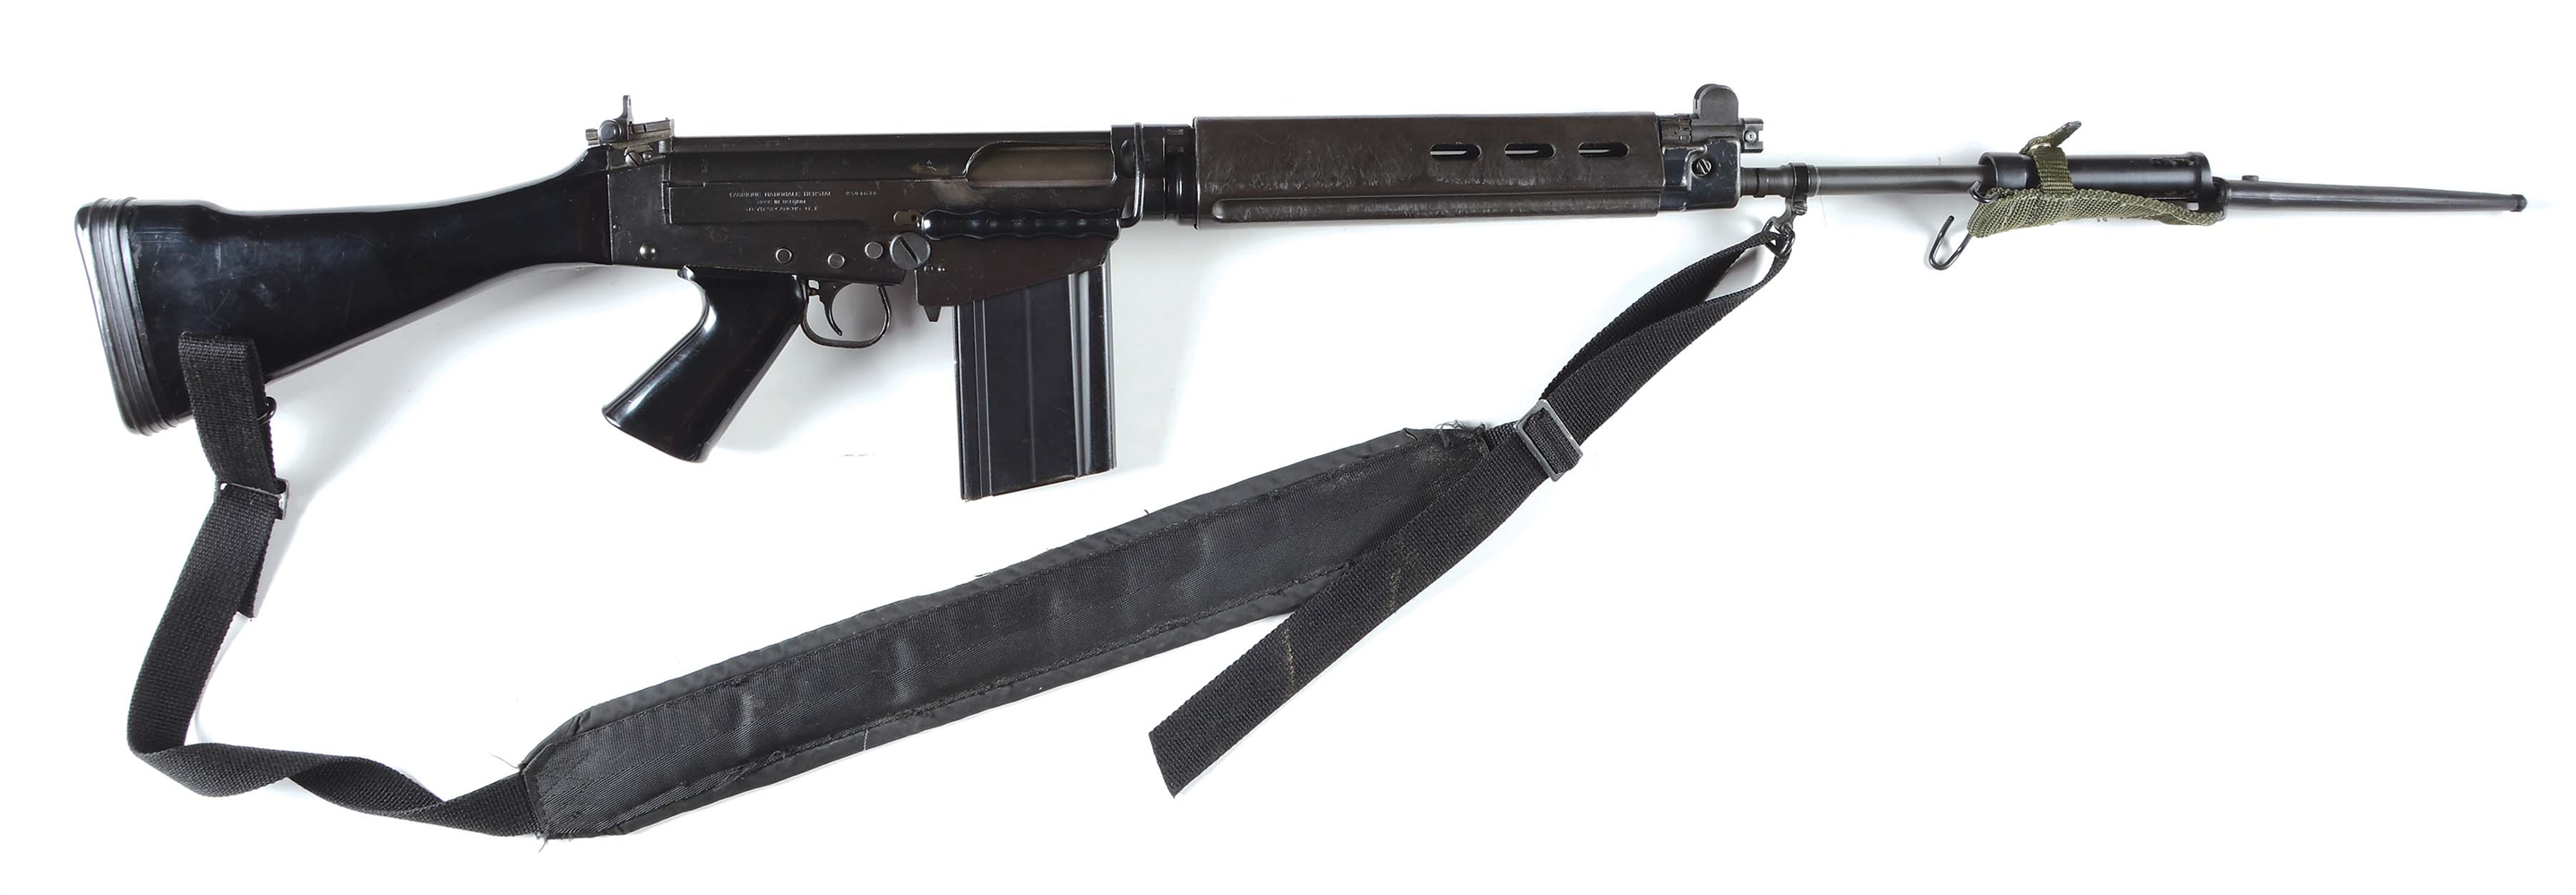 (M) Fabrique Nationale FAL 50.00 Match .308 Semi-Automatic Rifle With Bayonet.